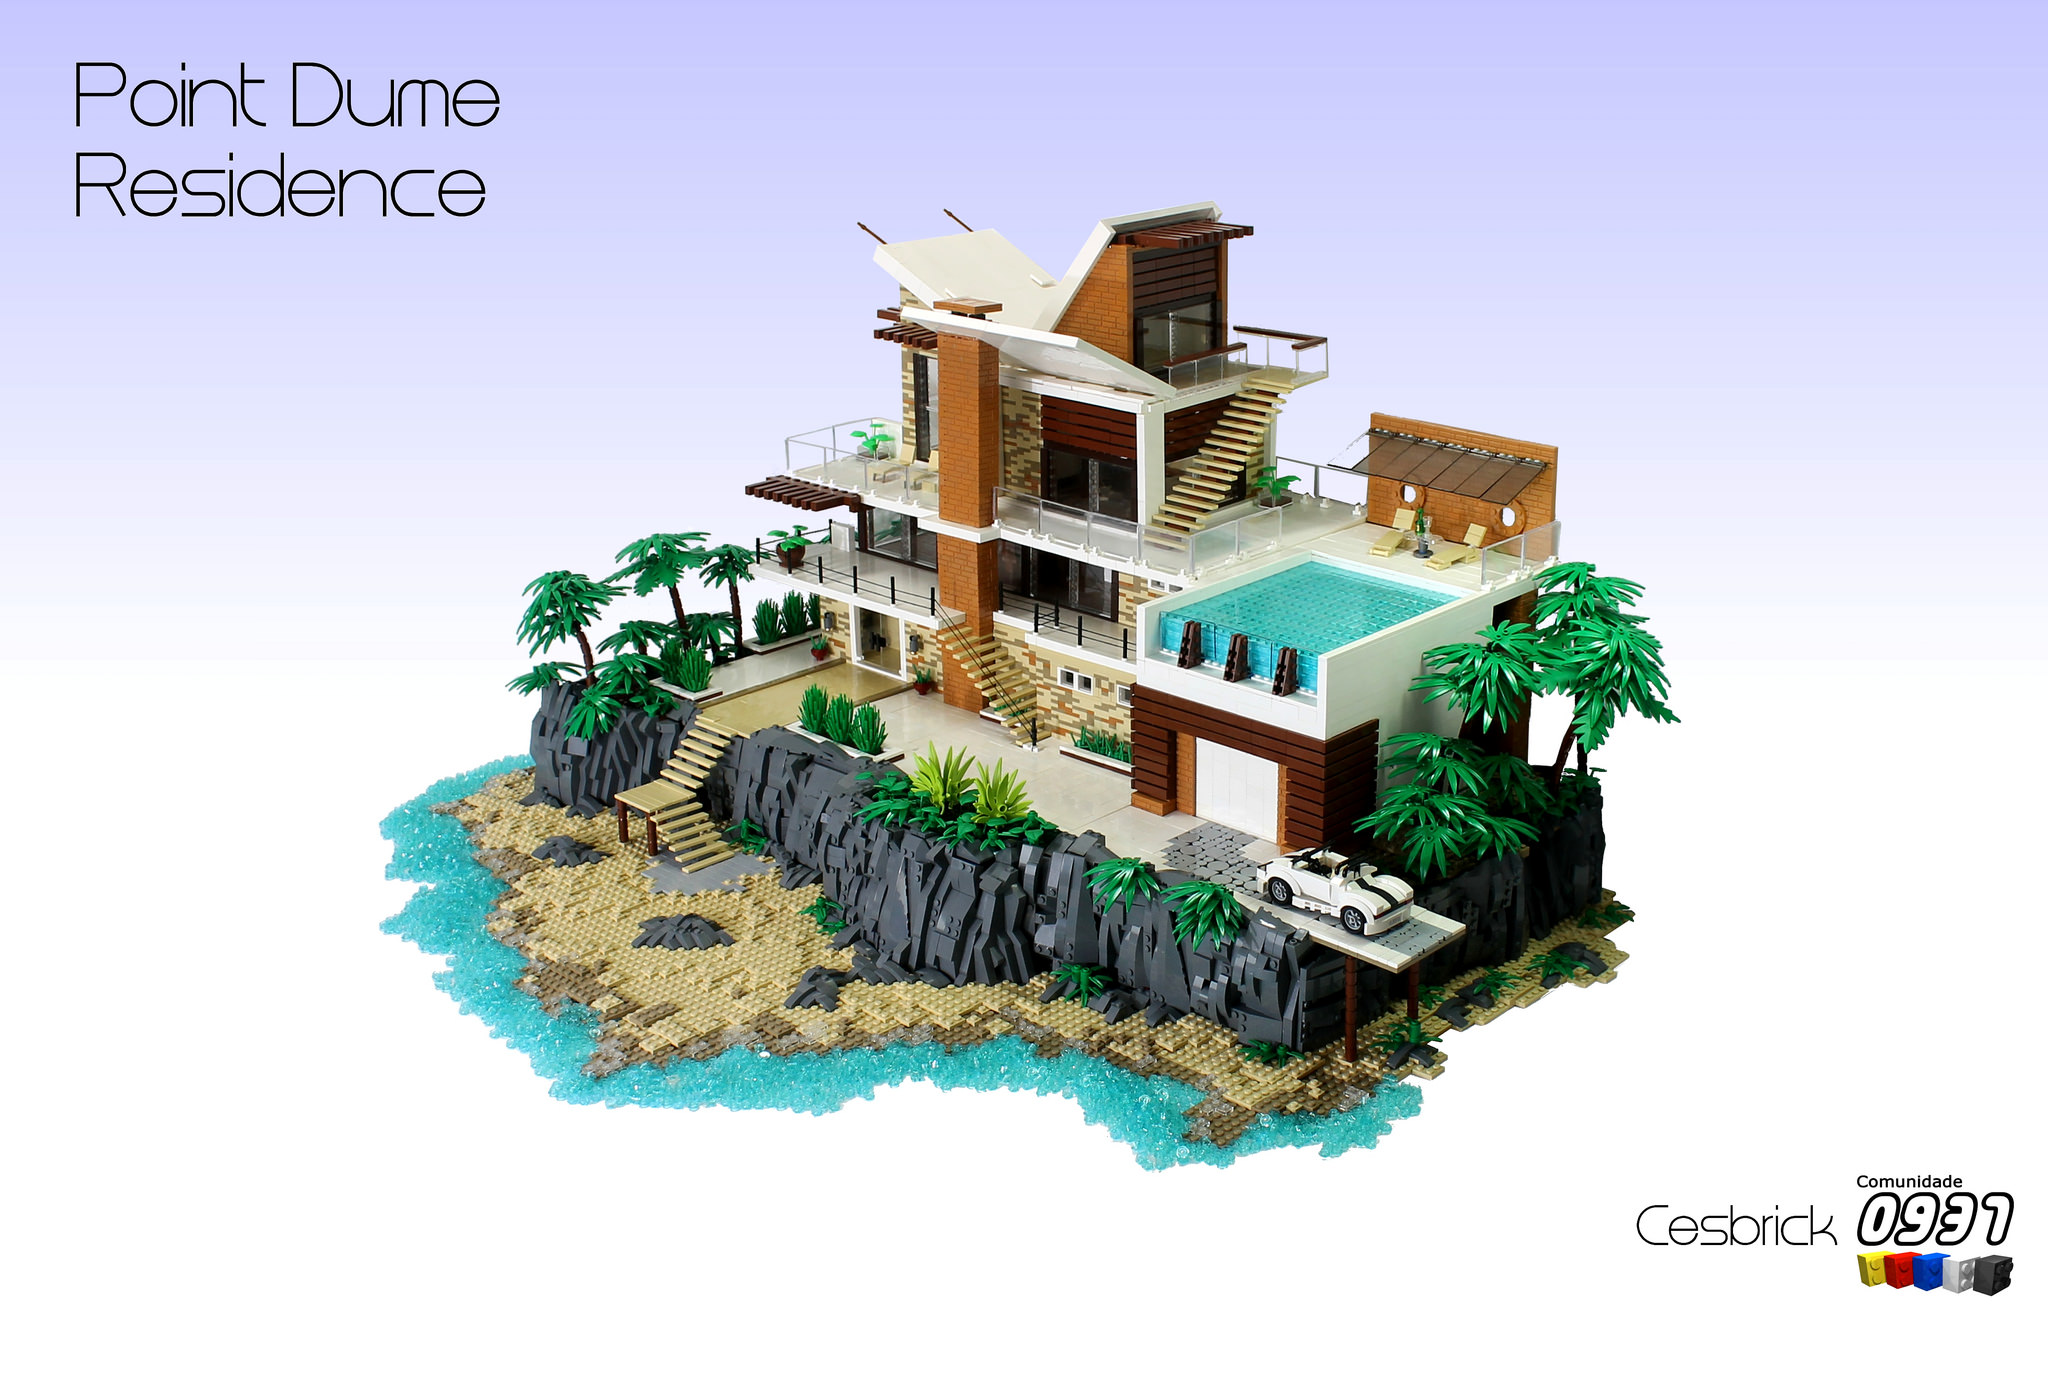 Une villa de r ve hellobricks blog lego for Une villa de reve